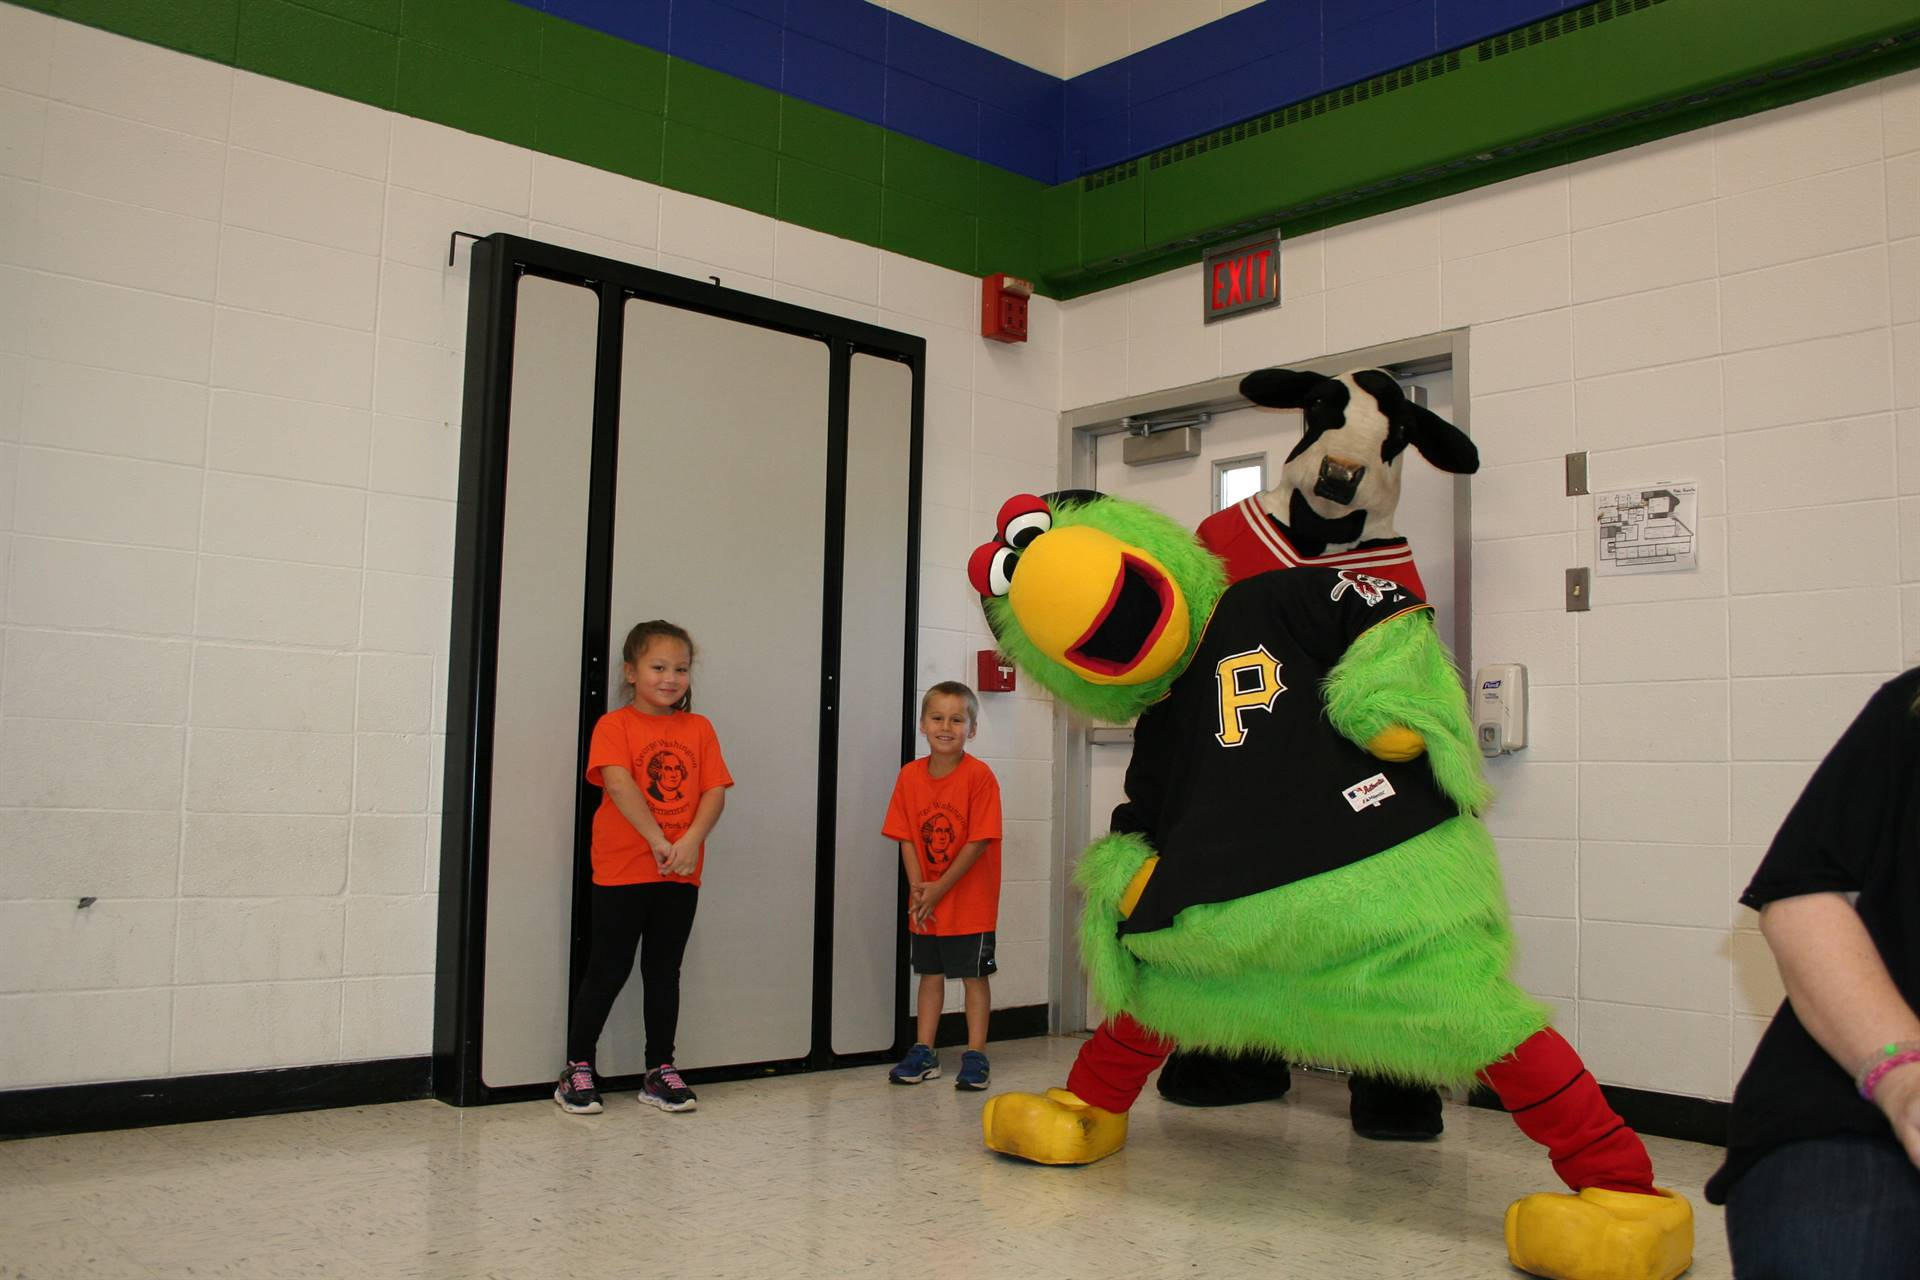 The Pirate Parrot and Chick-Fil-A Cow make Washington students laugh